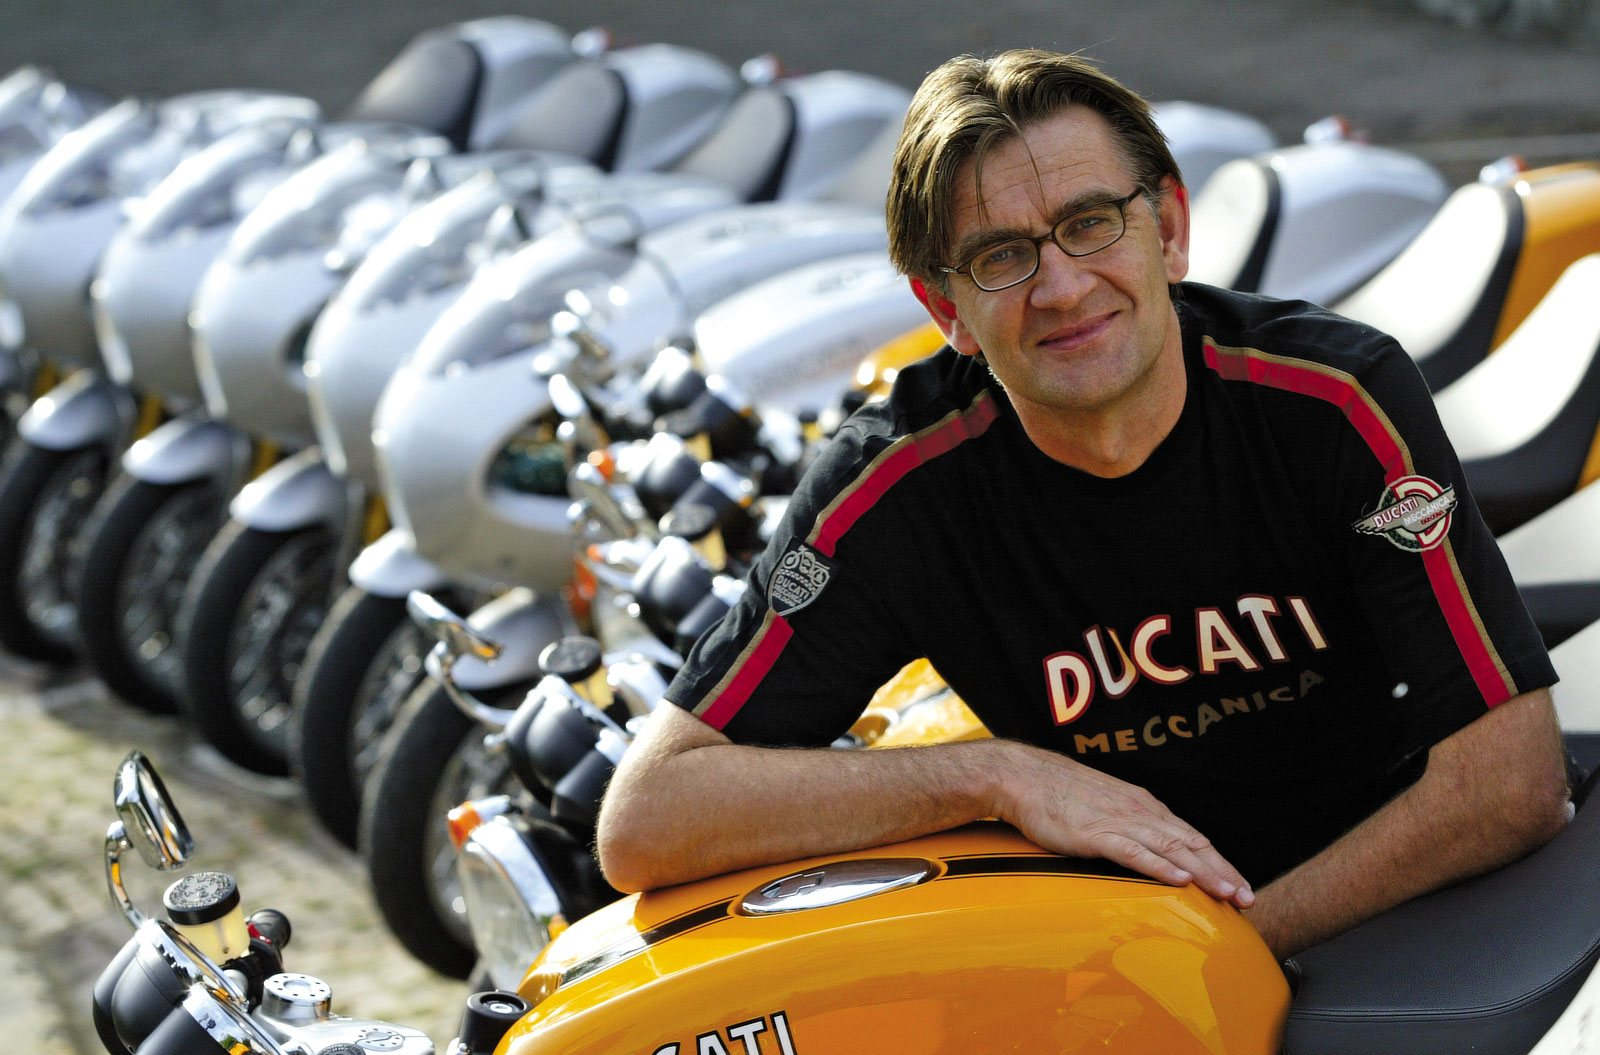 Pierre Terblanche joins Royal Enfield